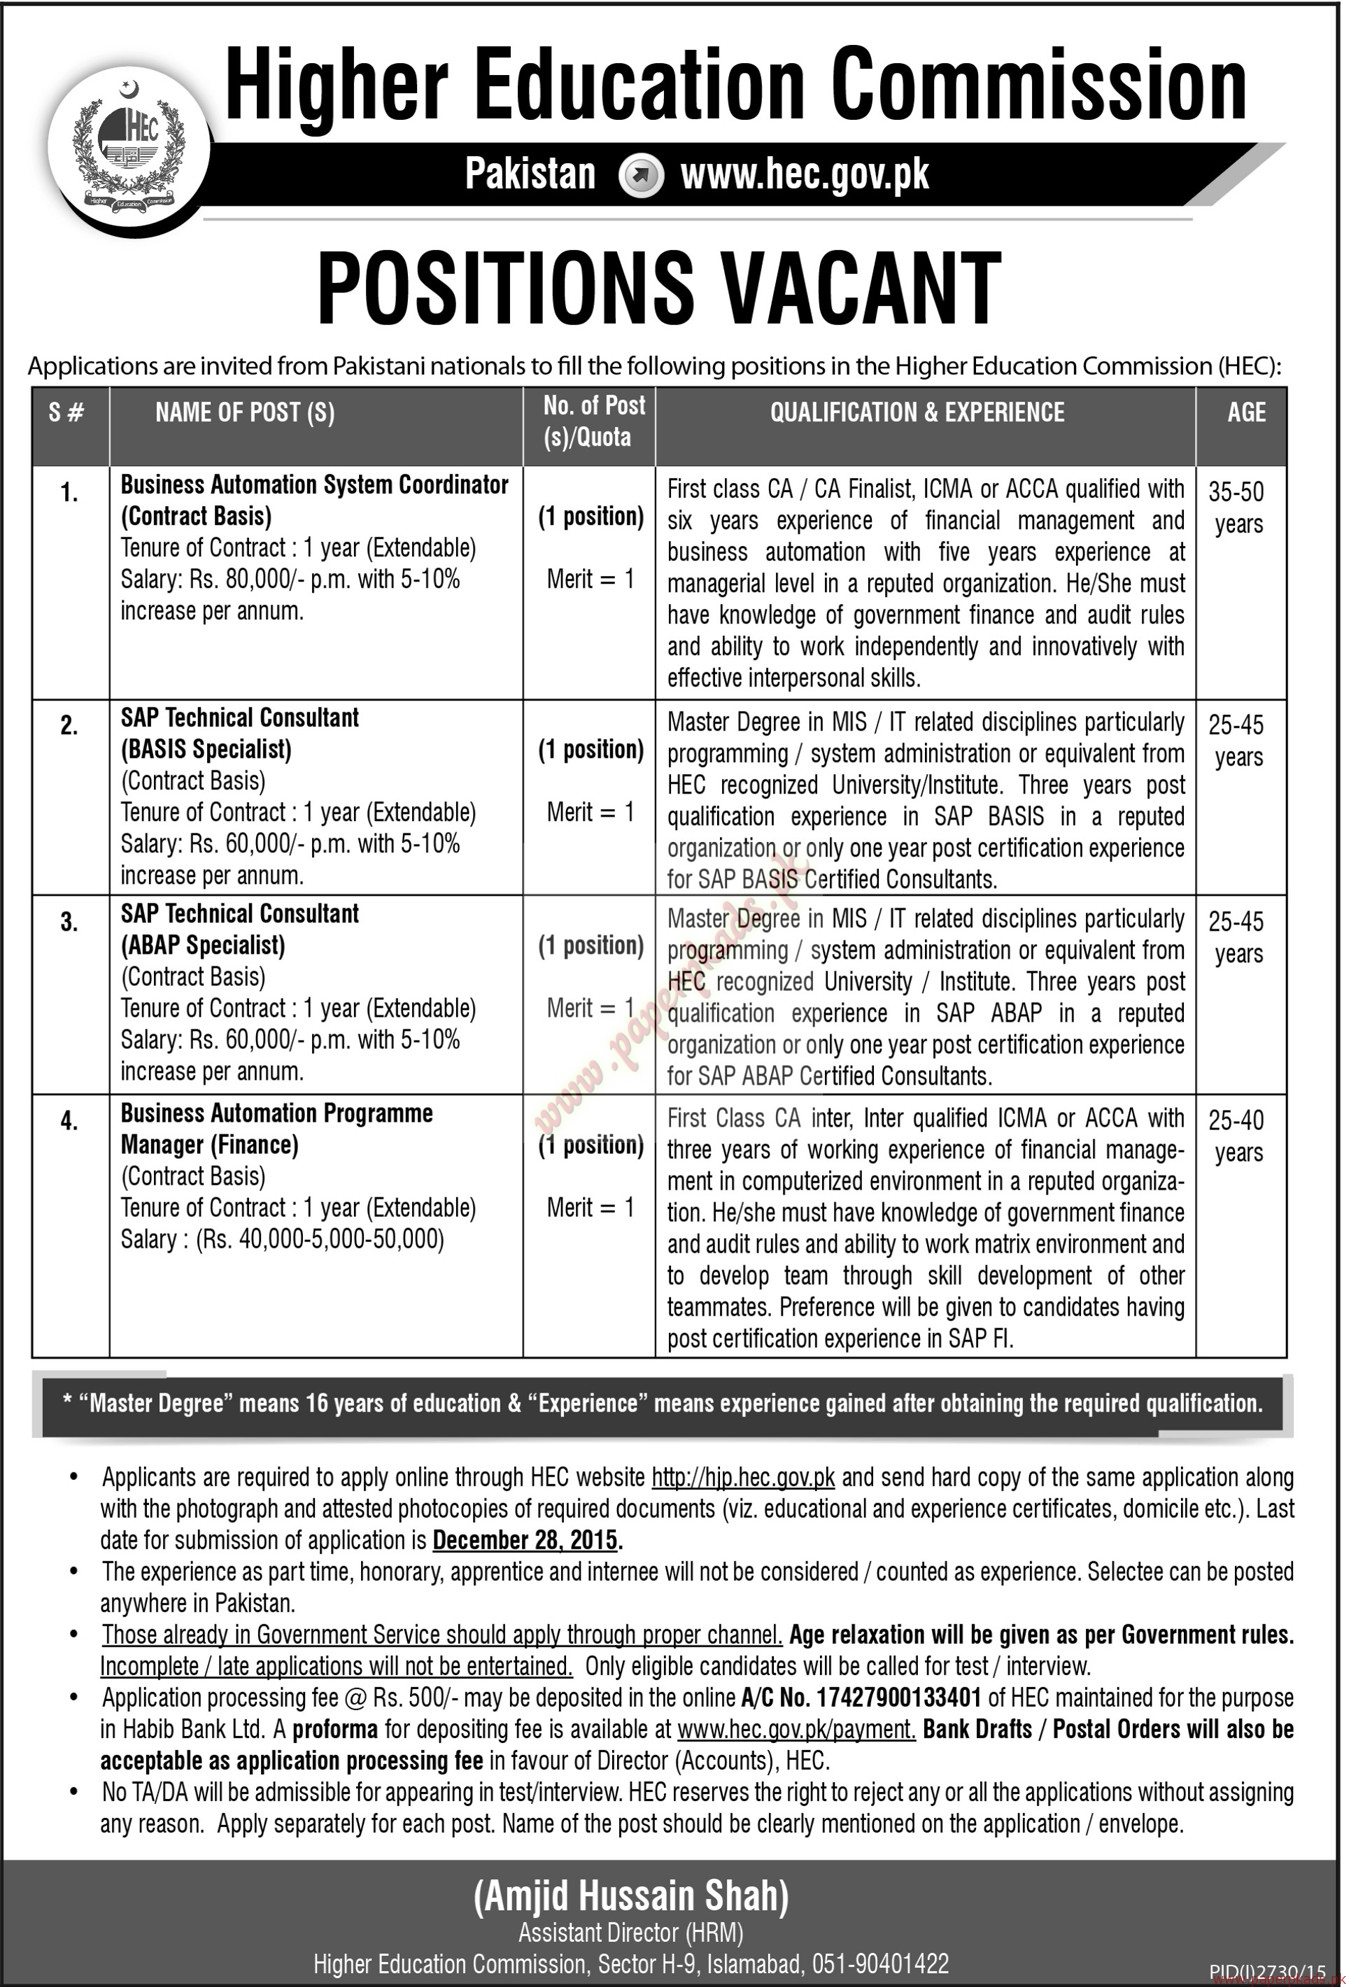 higher education commission jobs mashriq jobs ads  higher education commission jobs mashriq jobs ads 29 2015